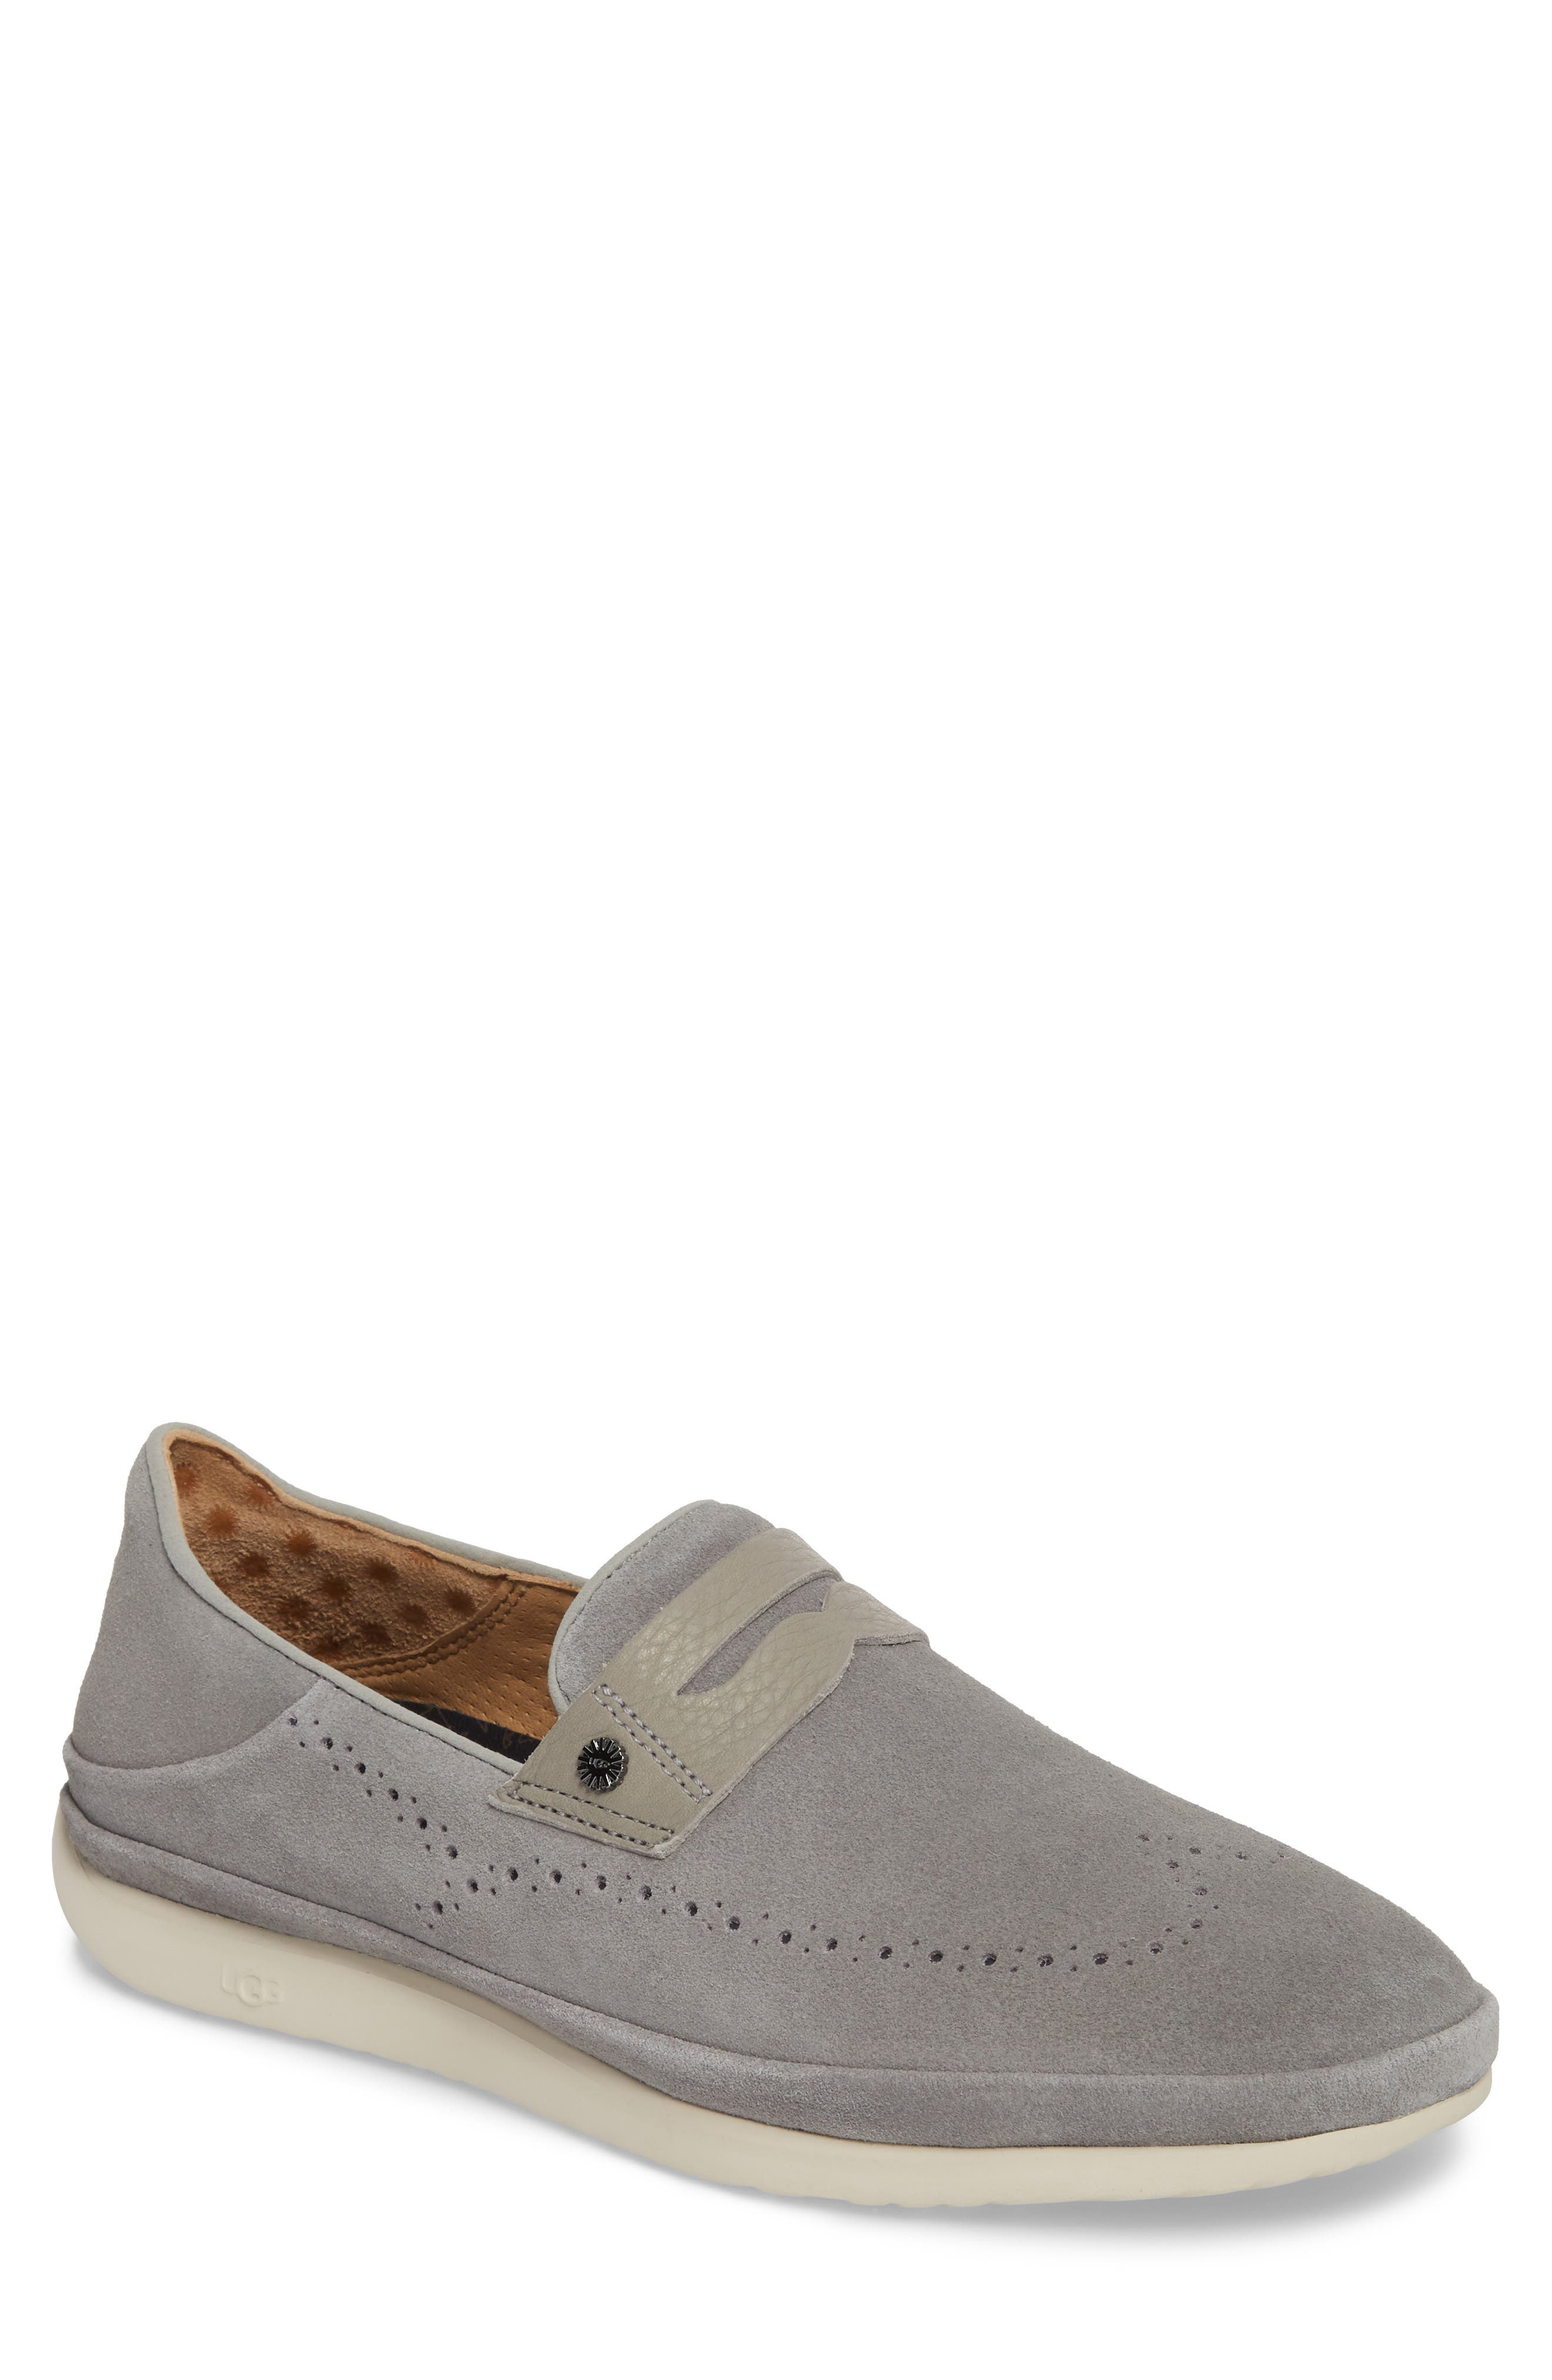 Cali Collapsible Wingtip Penny Loafer,                         Main,                         color, 024